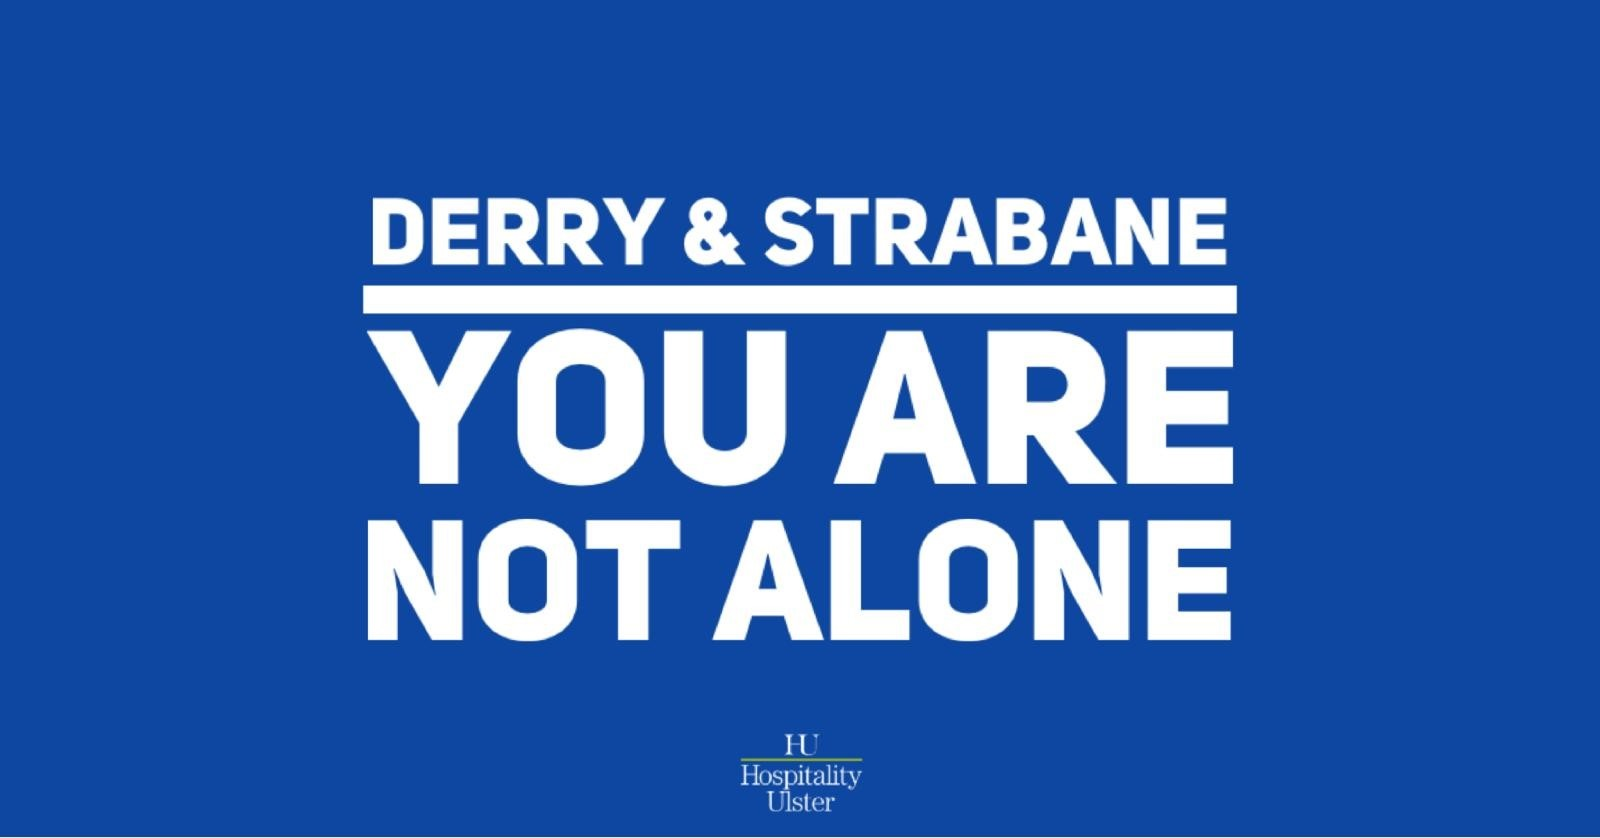 DERRY AND STRABANE - YOU ARE NOT ALONE